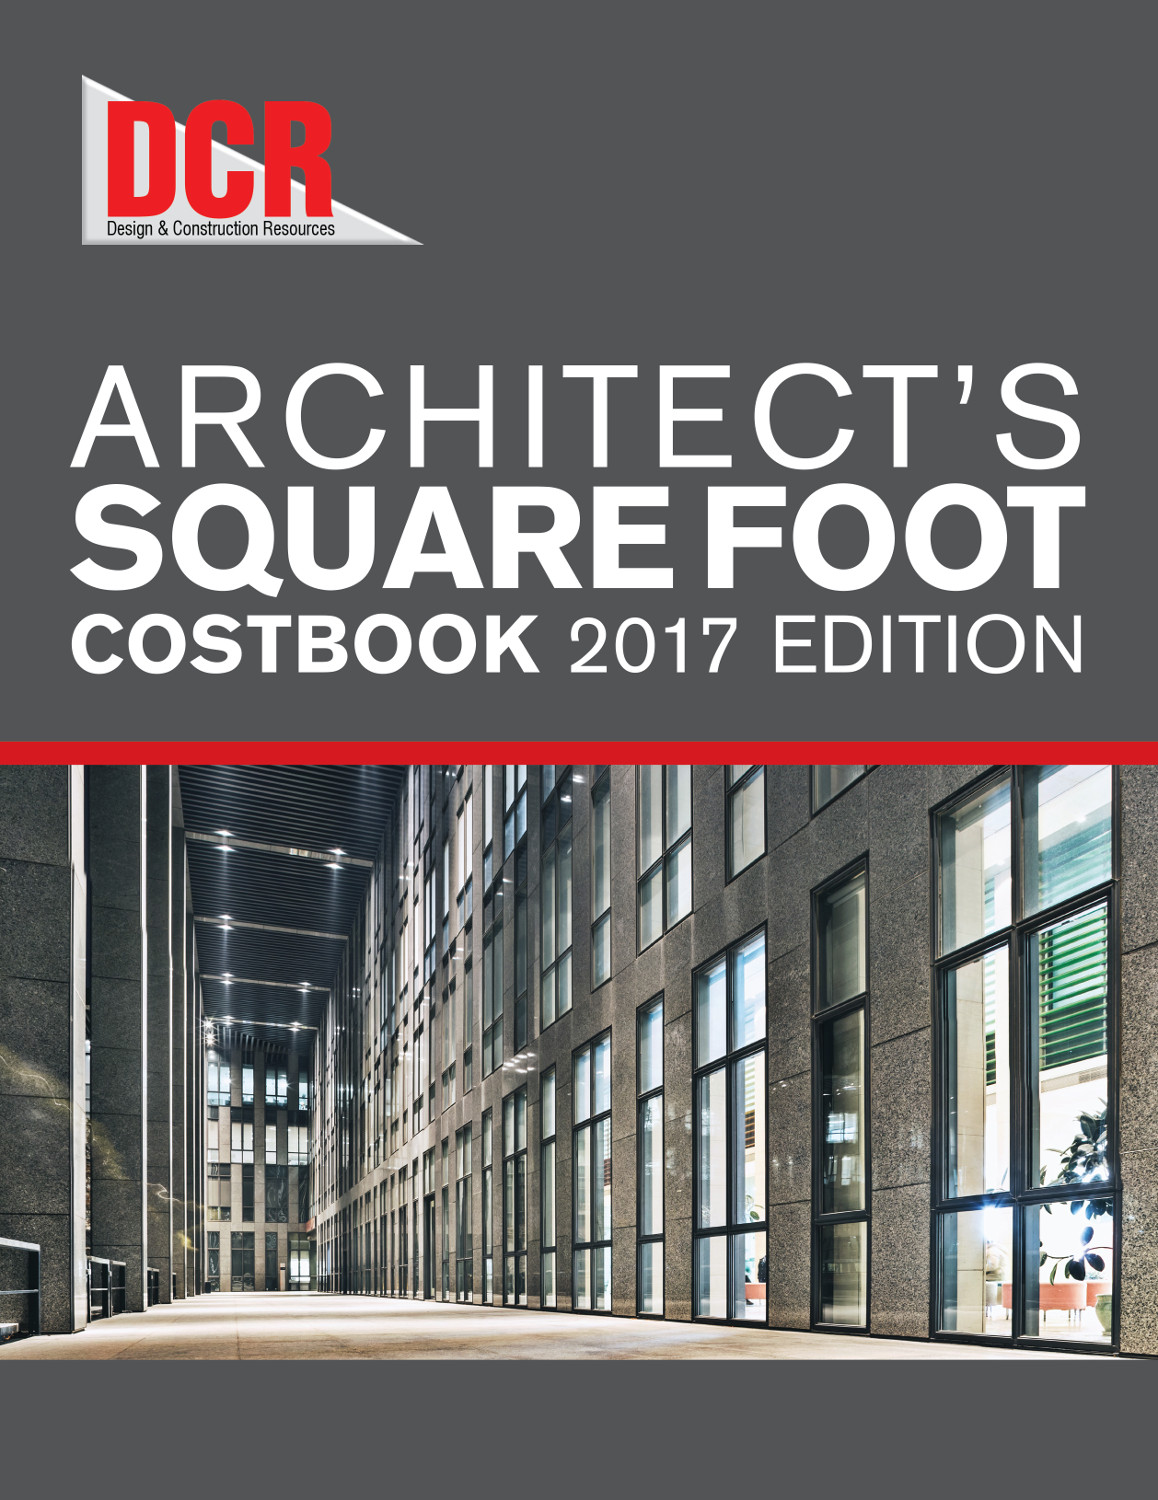 DCR Architect's Square Foot Costbook 2017